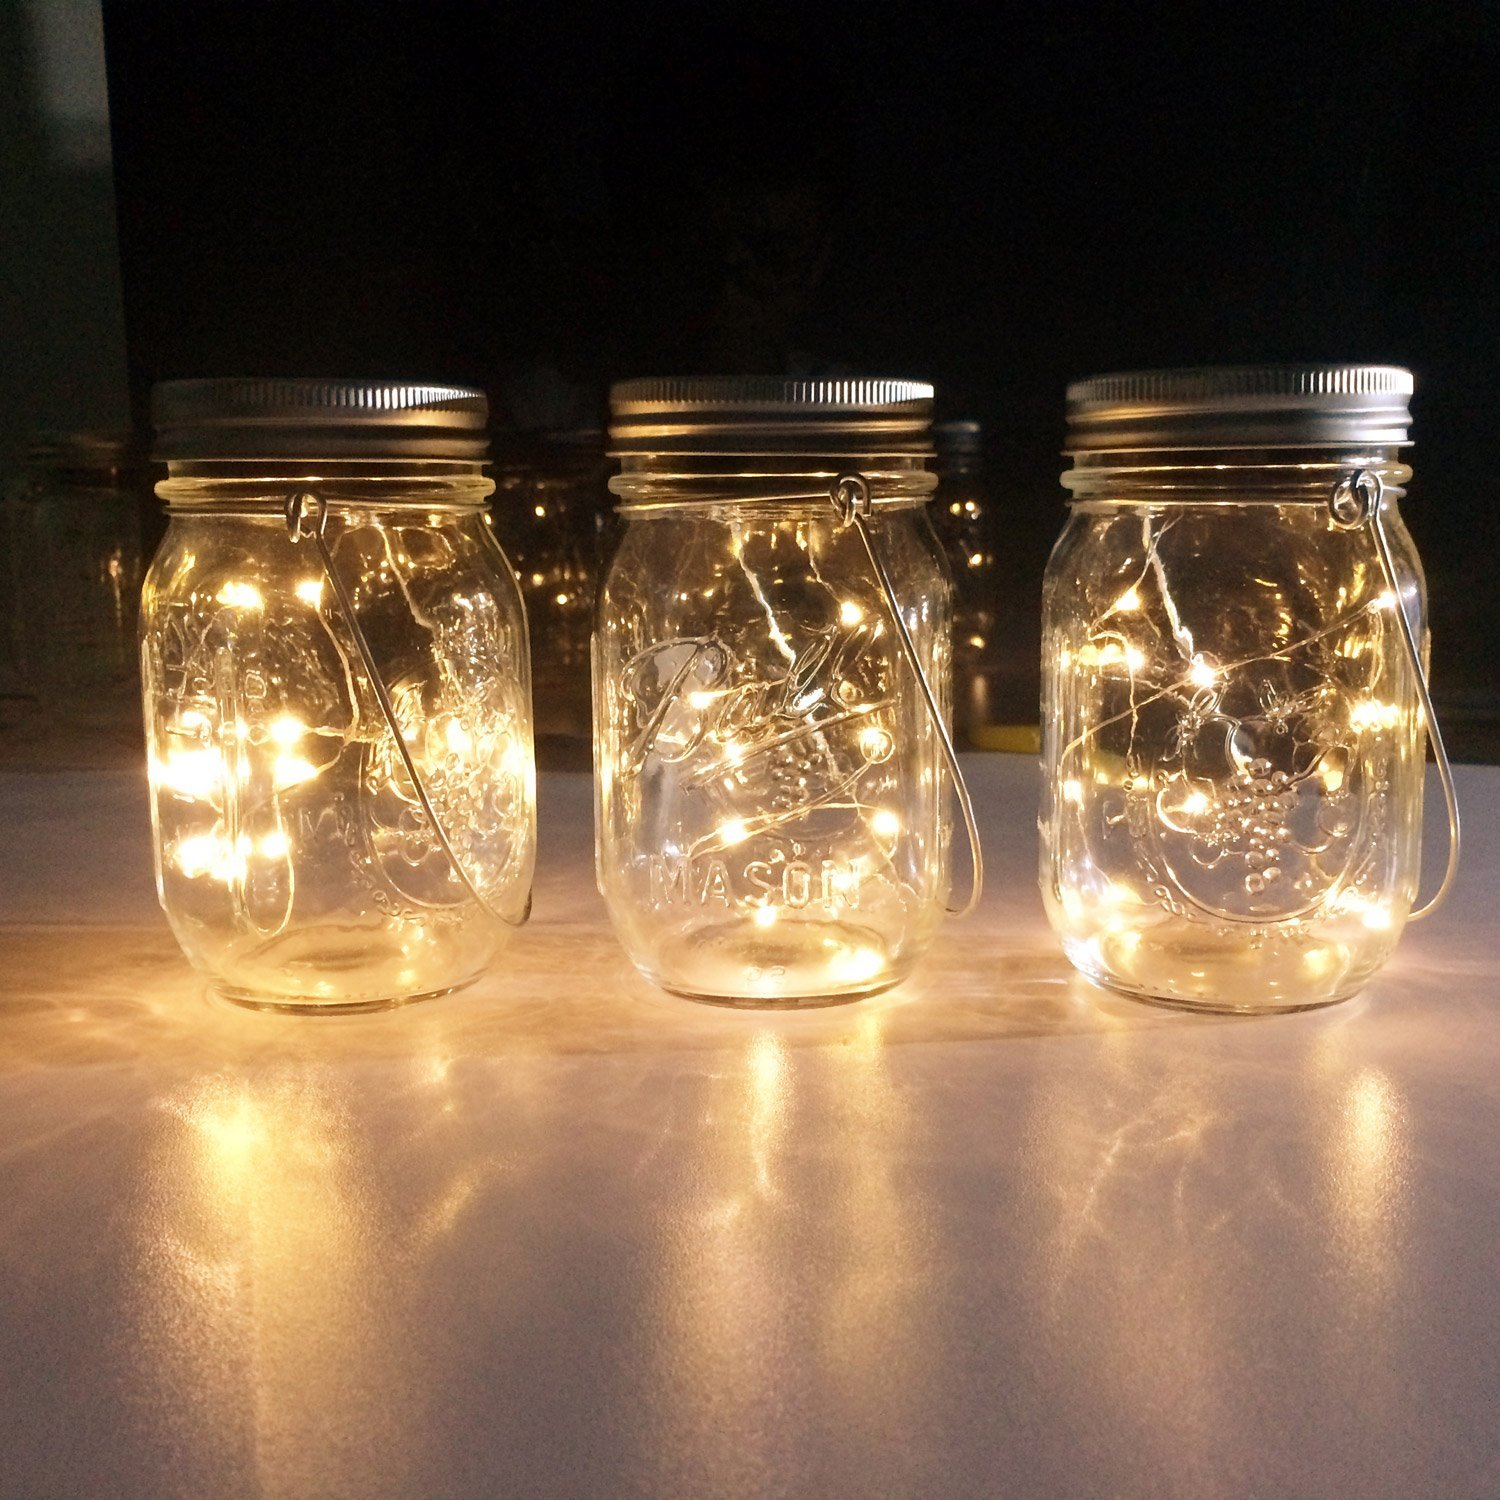 Mason Jar Decor Part - 43: Mason Jar Centerpieces Diy Idea With Led Fairy Lights | Http://amzn.